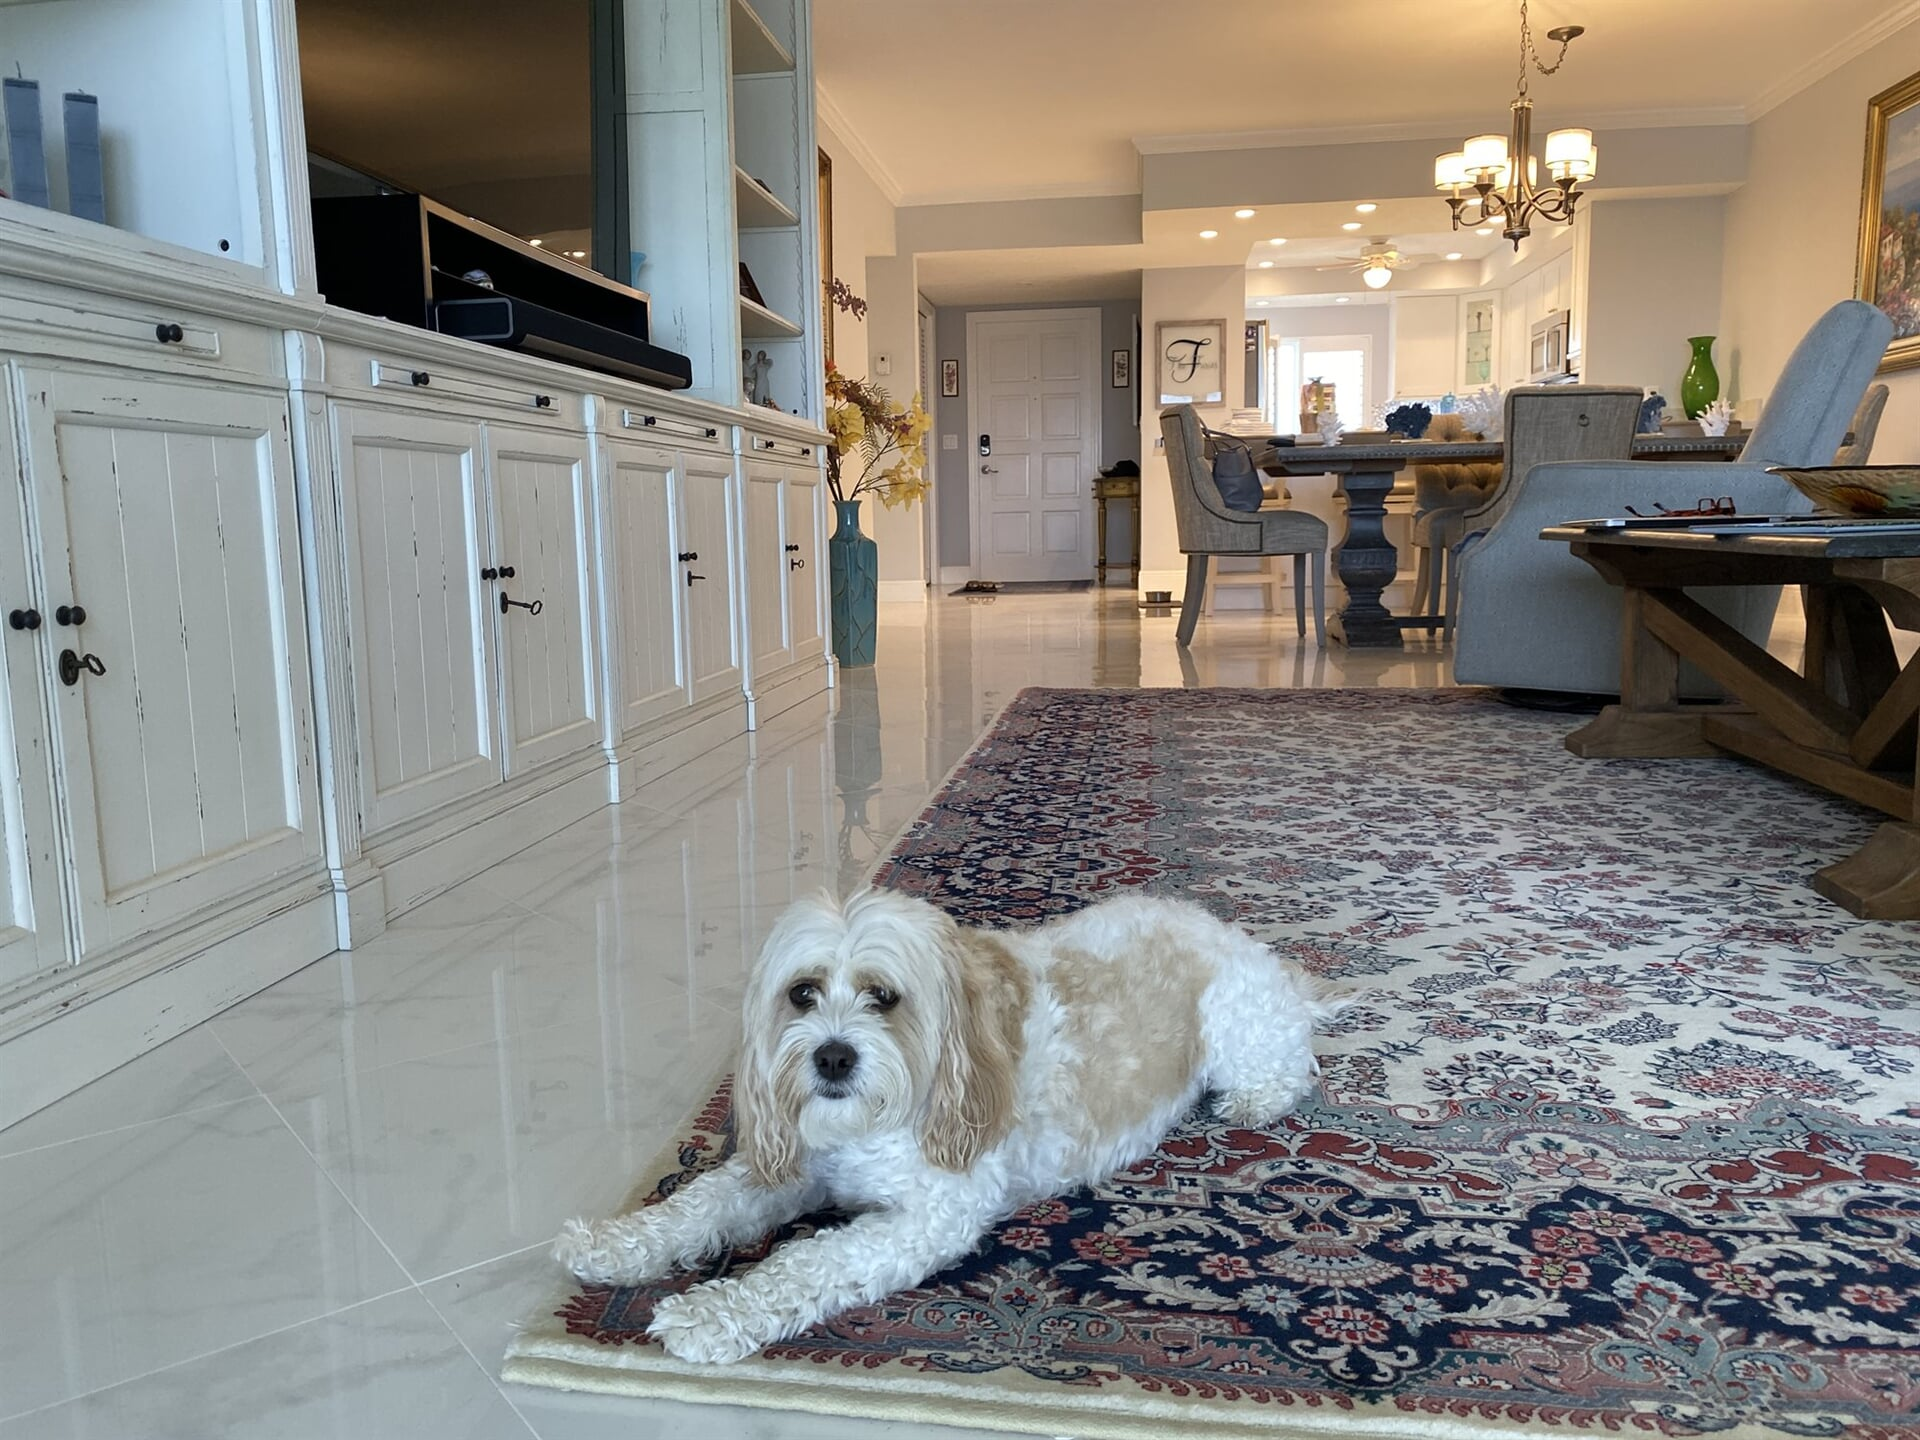 Pet-friendly flooring in Jupiter, FL from Floors For You Kitchen & Bath